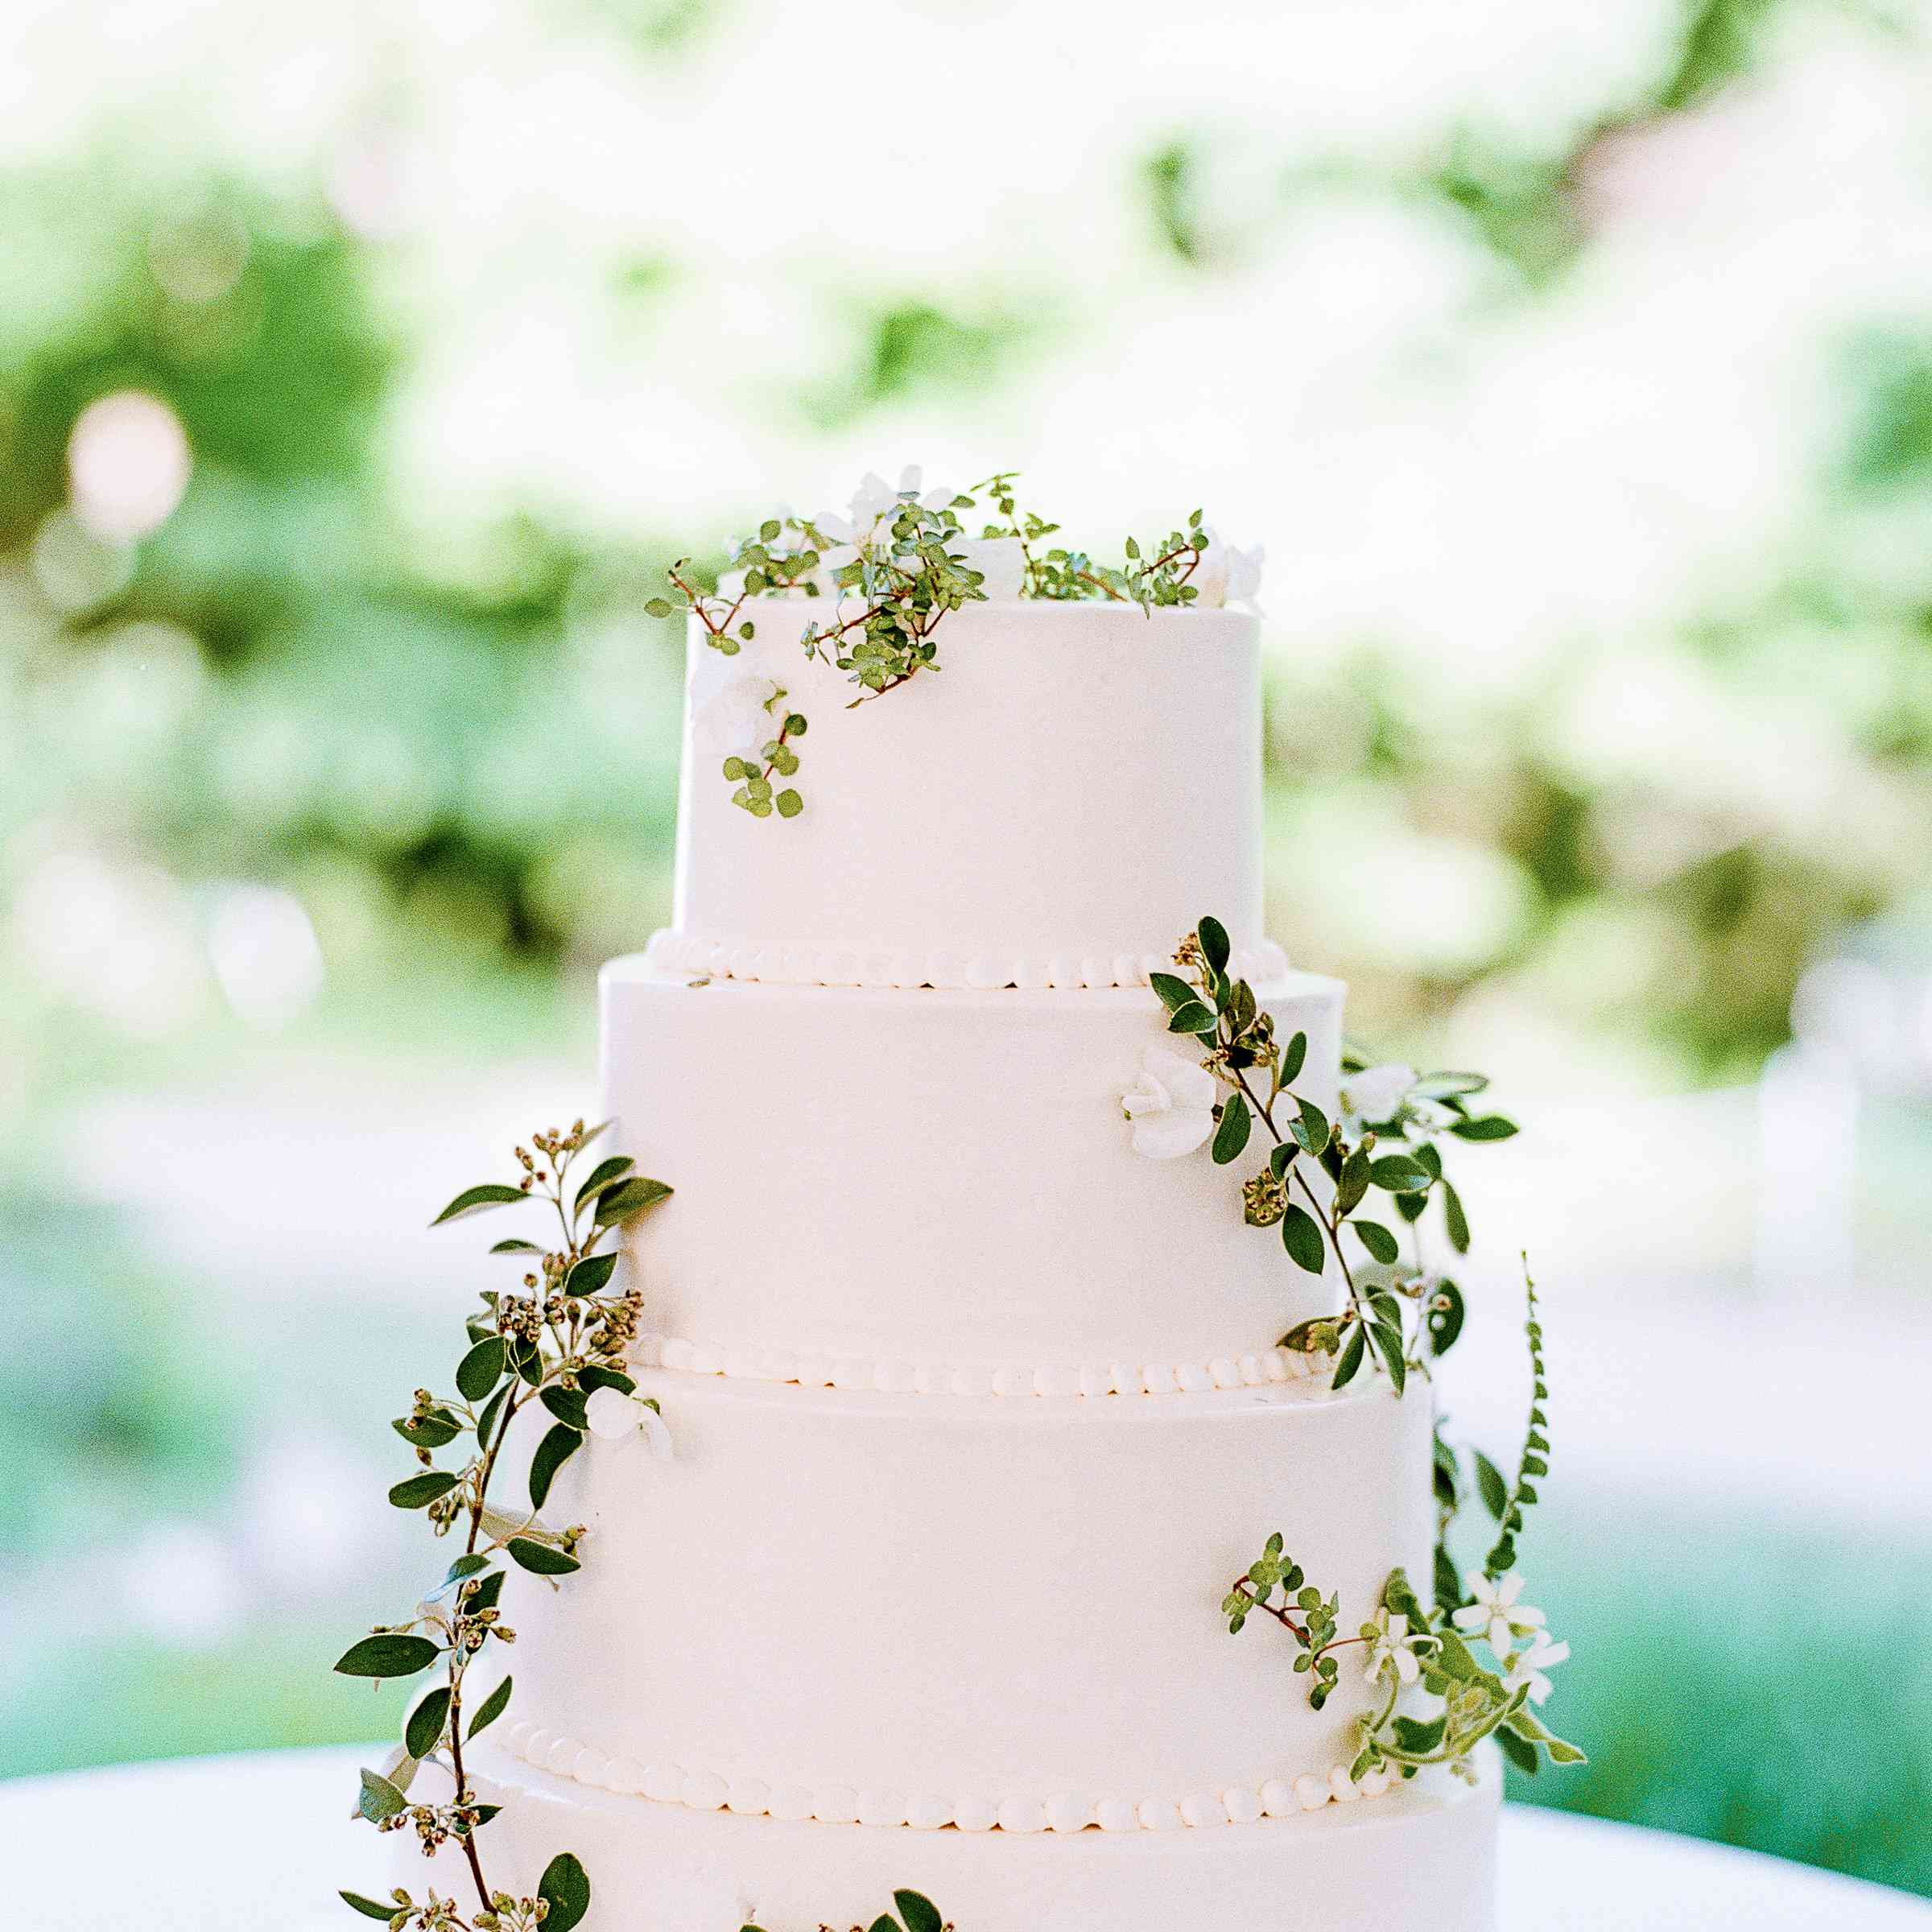 Wedding cake with sprigs of leaves